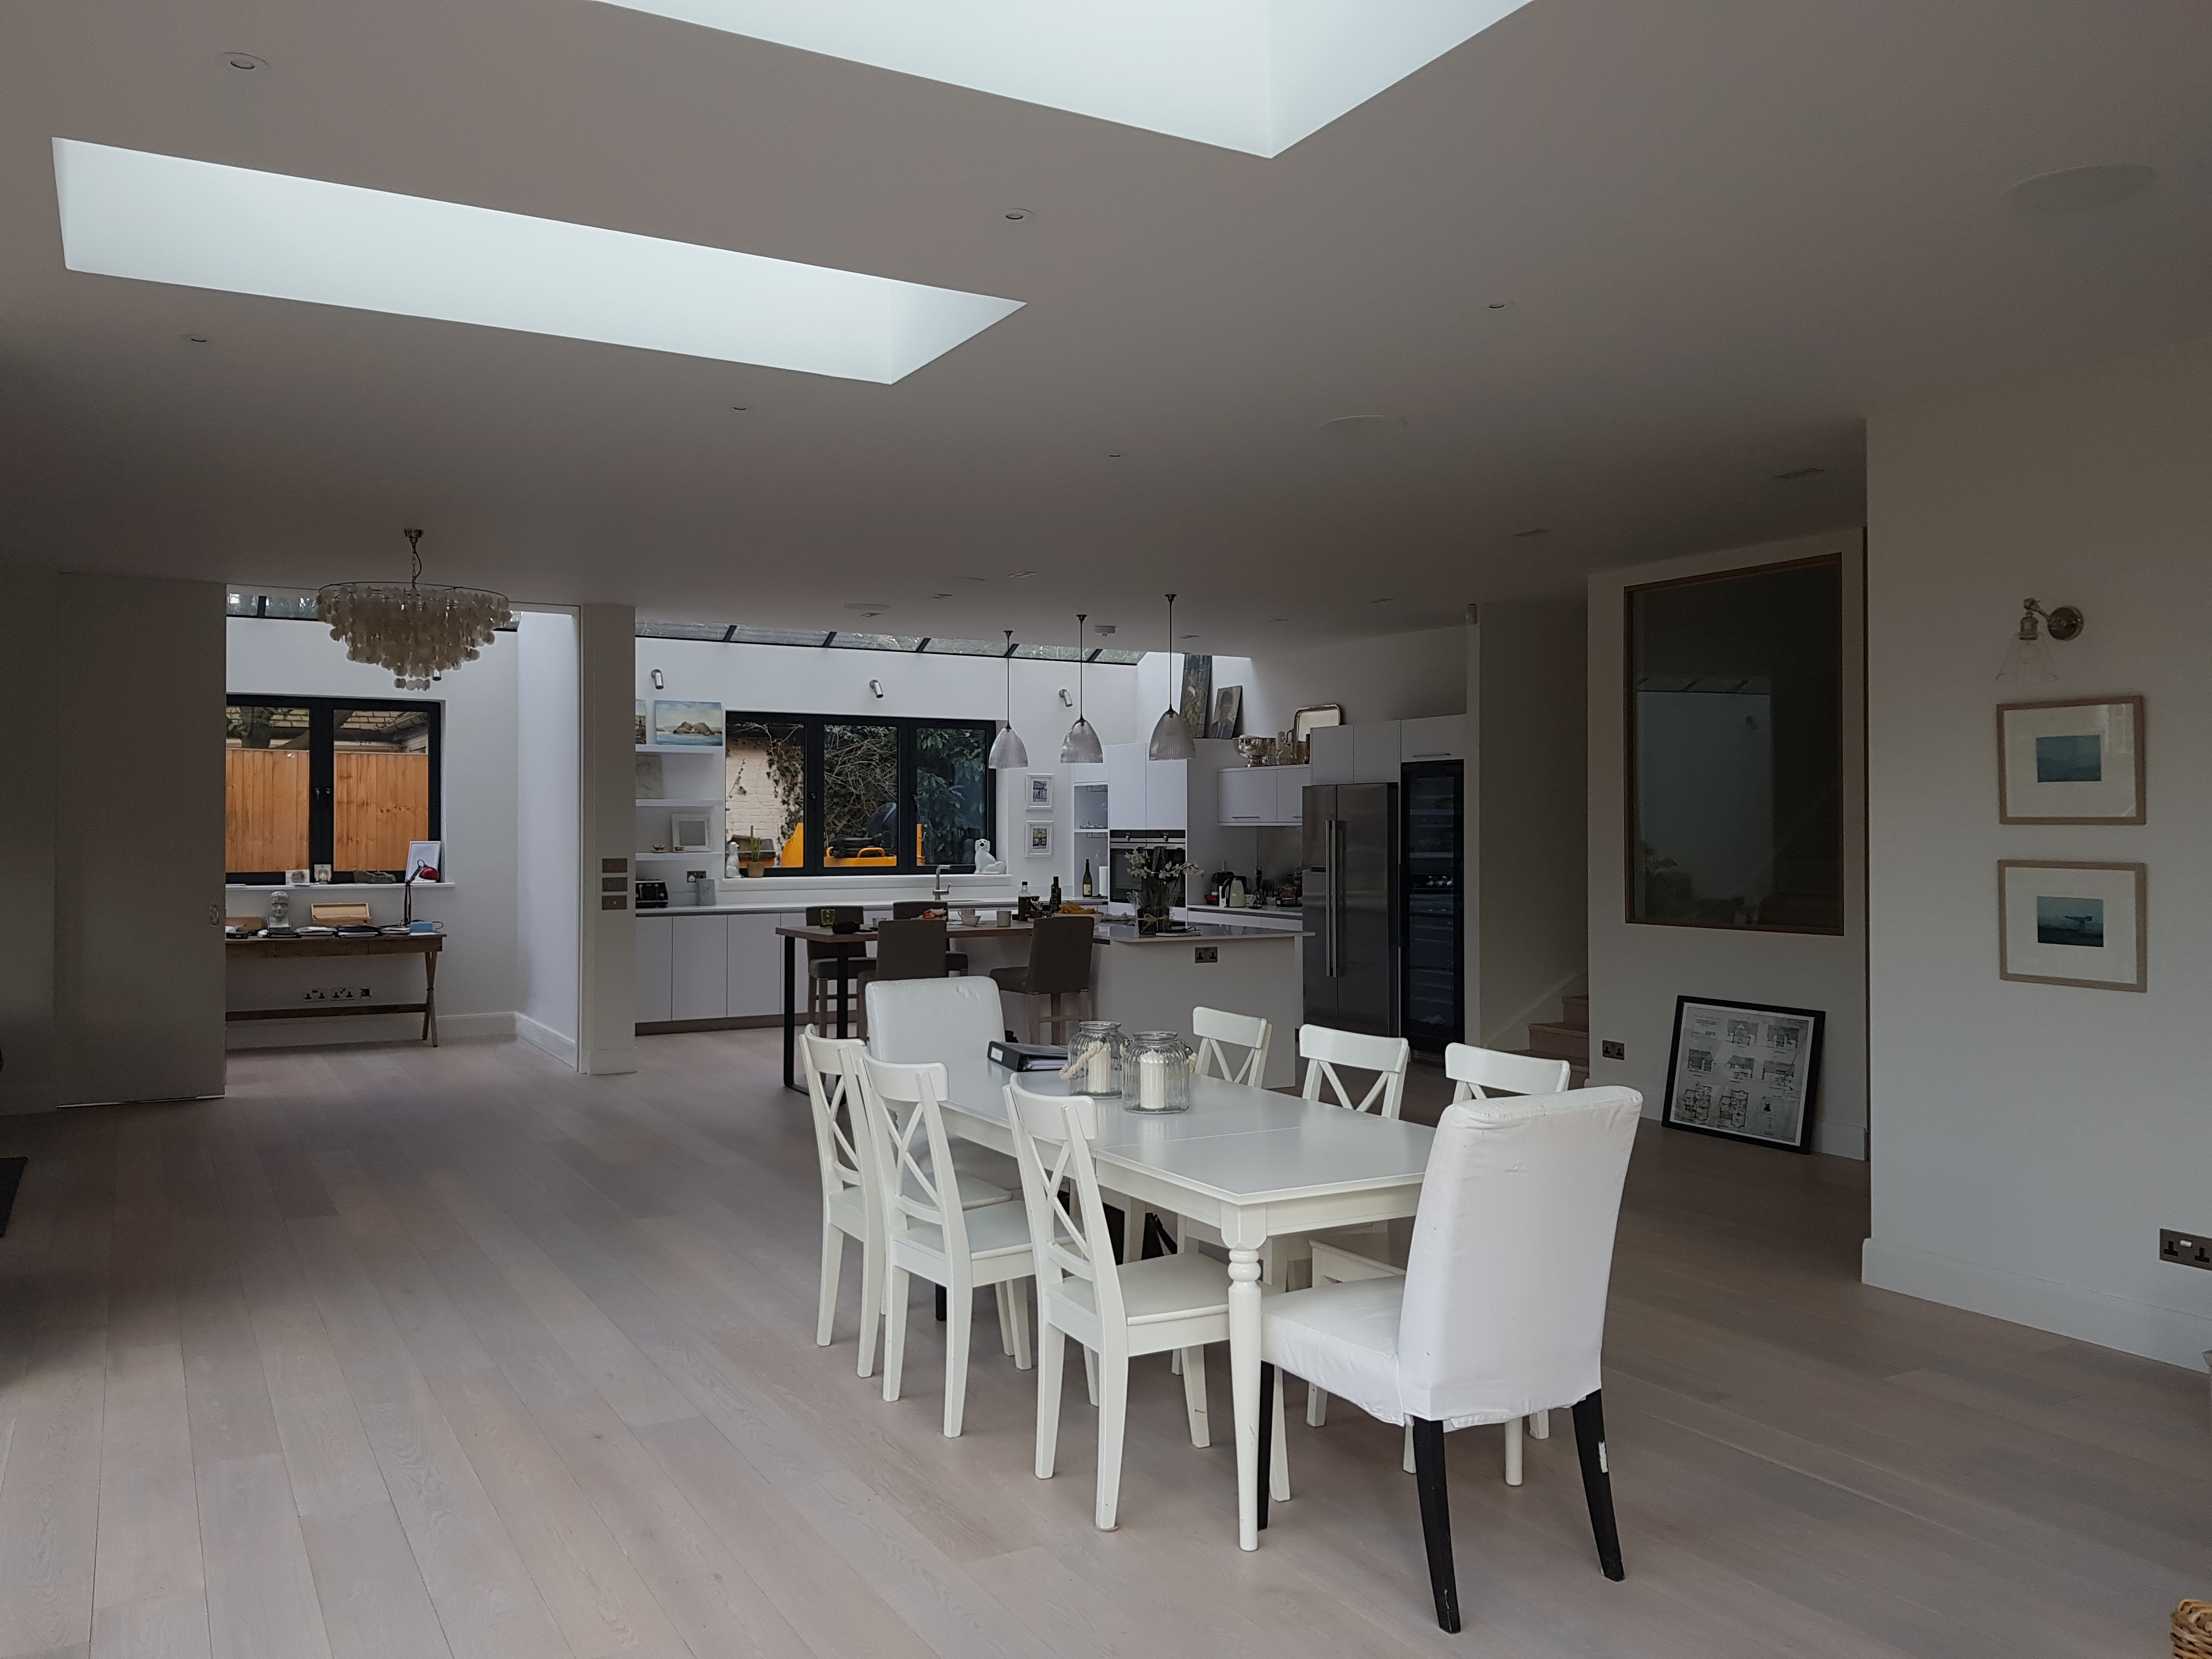 creativemass - rear extension and internal remodelling, light, dining, kitchen, living room, office, open plan living, London